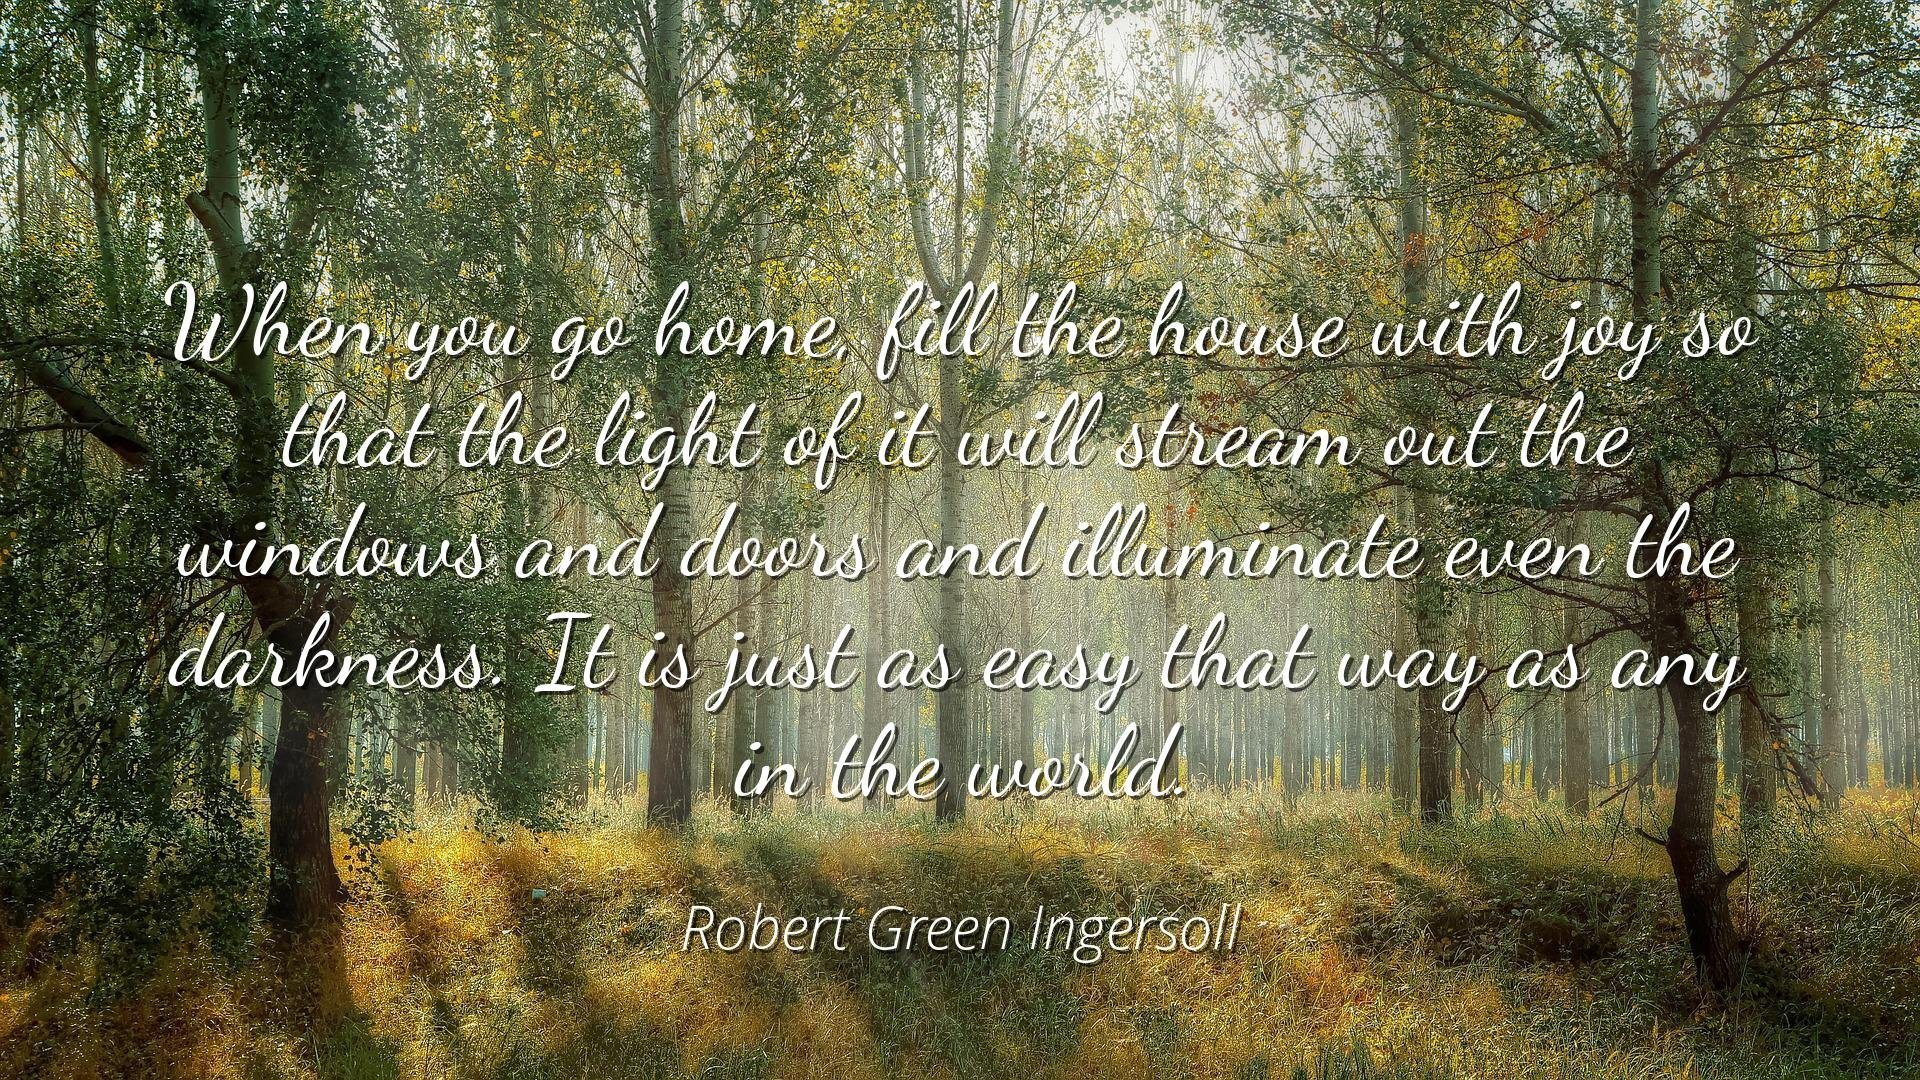 Robert Green Ingersoll - Famous Quotes Laminated Poster Print 24x20 - When You go Home, Fill The House with Joy so That The Light of it Will Stream Out The Windows and Doors and Illuminate Even The d